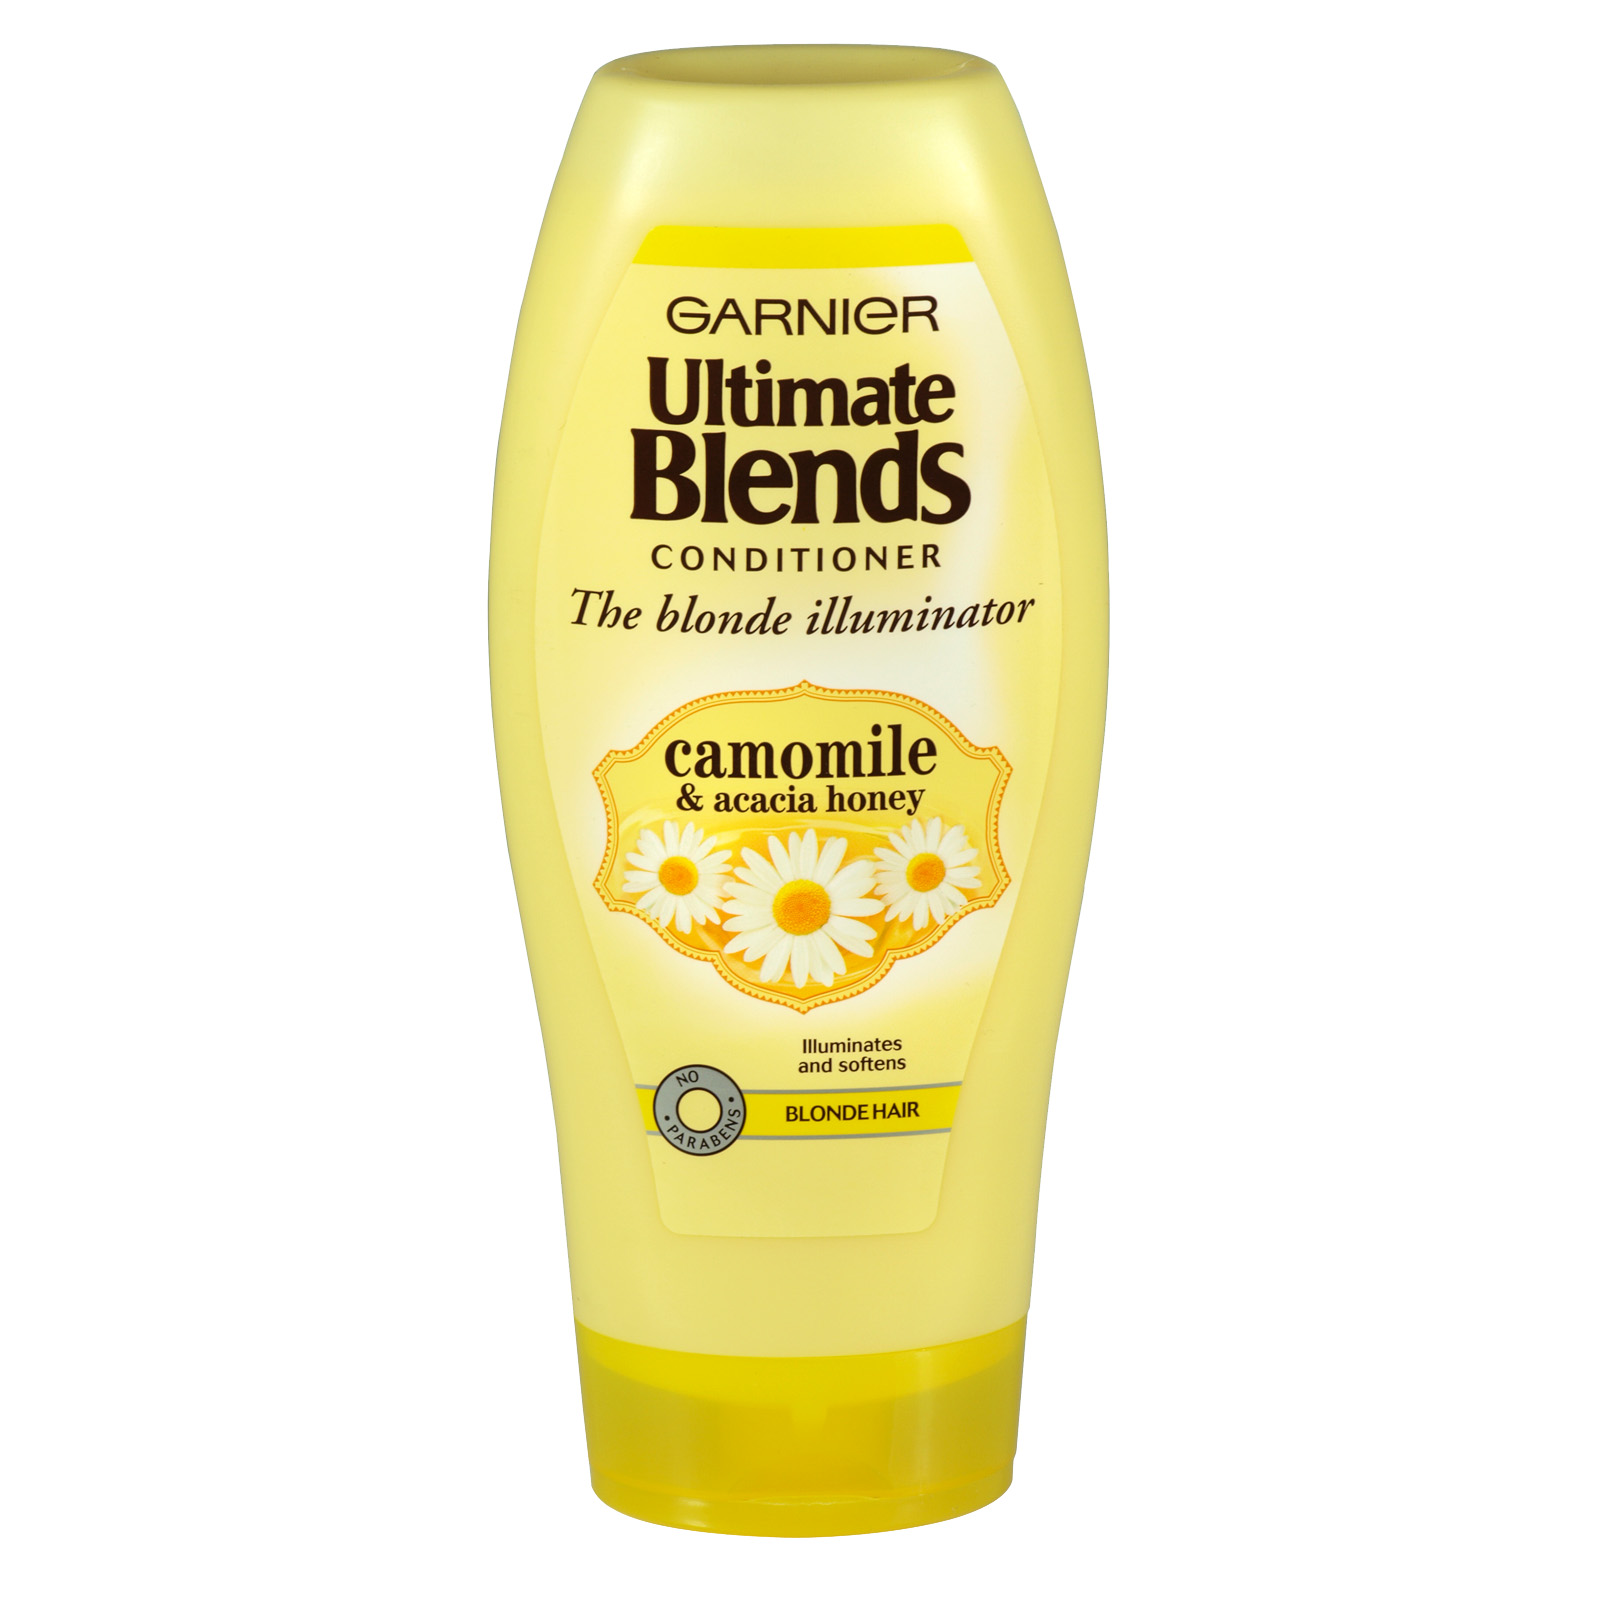 GARNIER ULTIMATE BLENDS 400ML COND CHAMOMILE+ HONEY BLONDE ILLUMINATOR X6